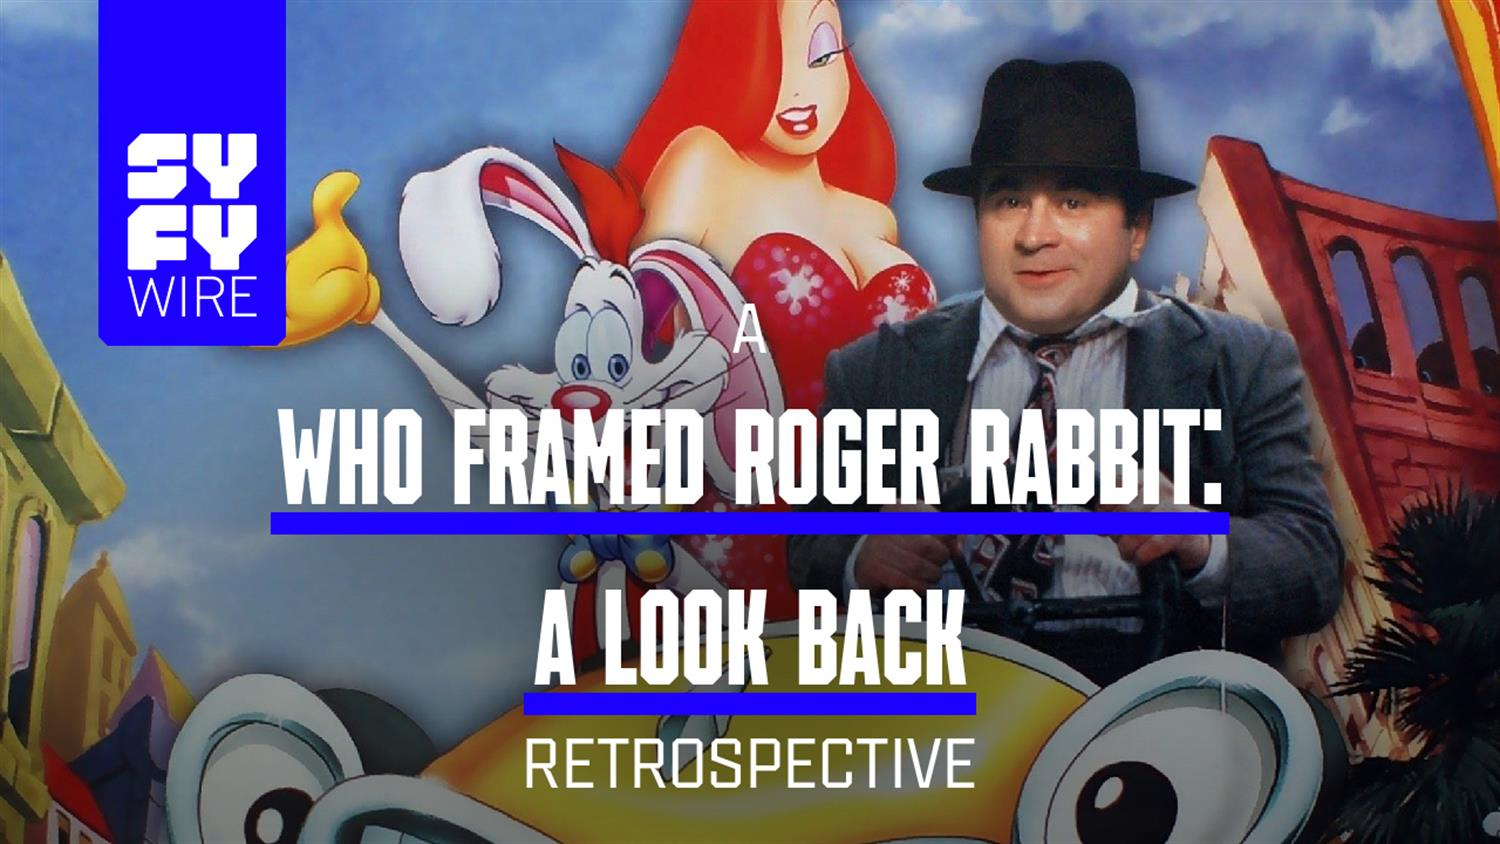 Who Framed Roger Rabbit: Just Drawn That Way (A Look Back)